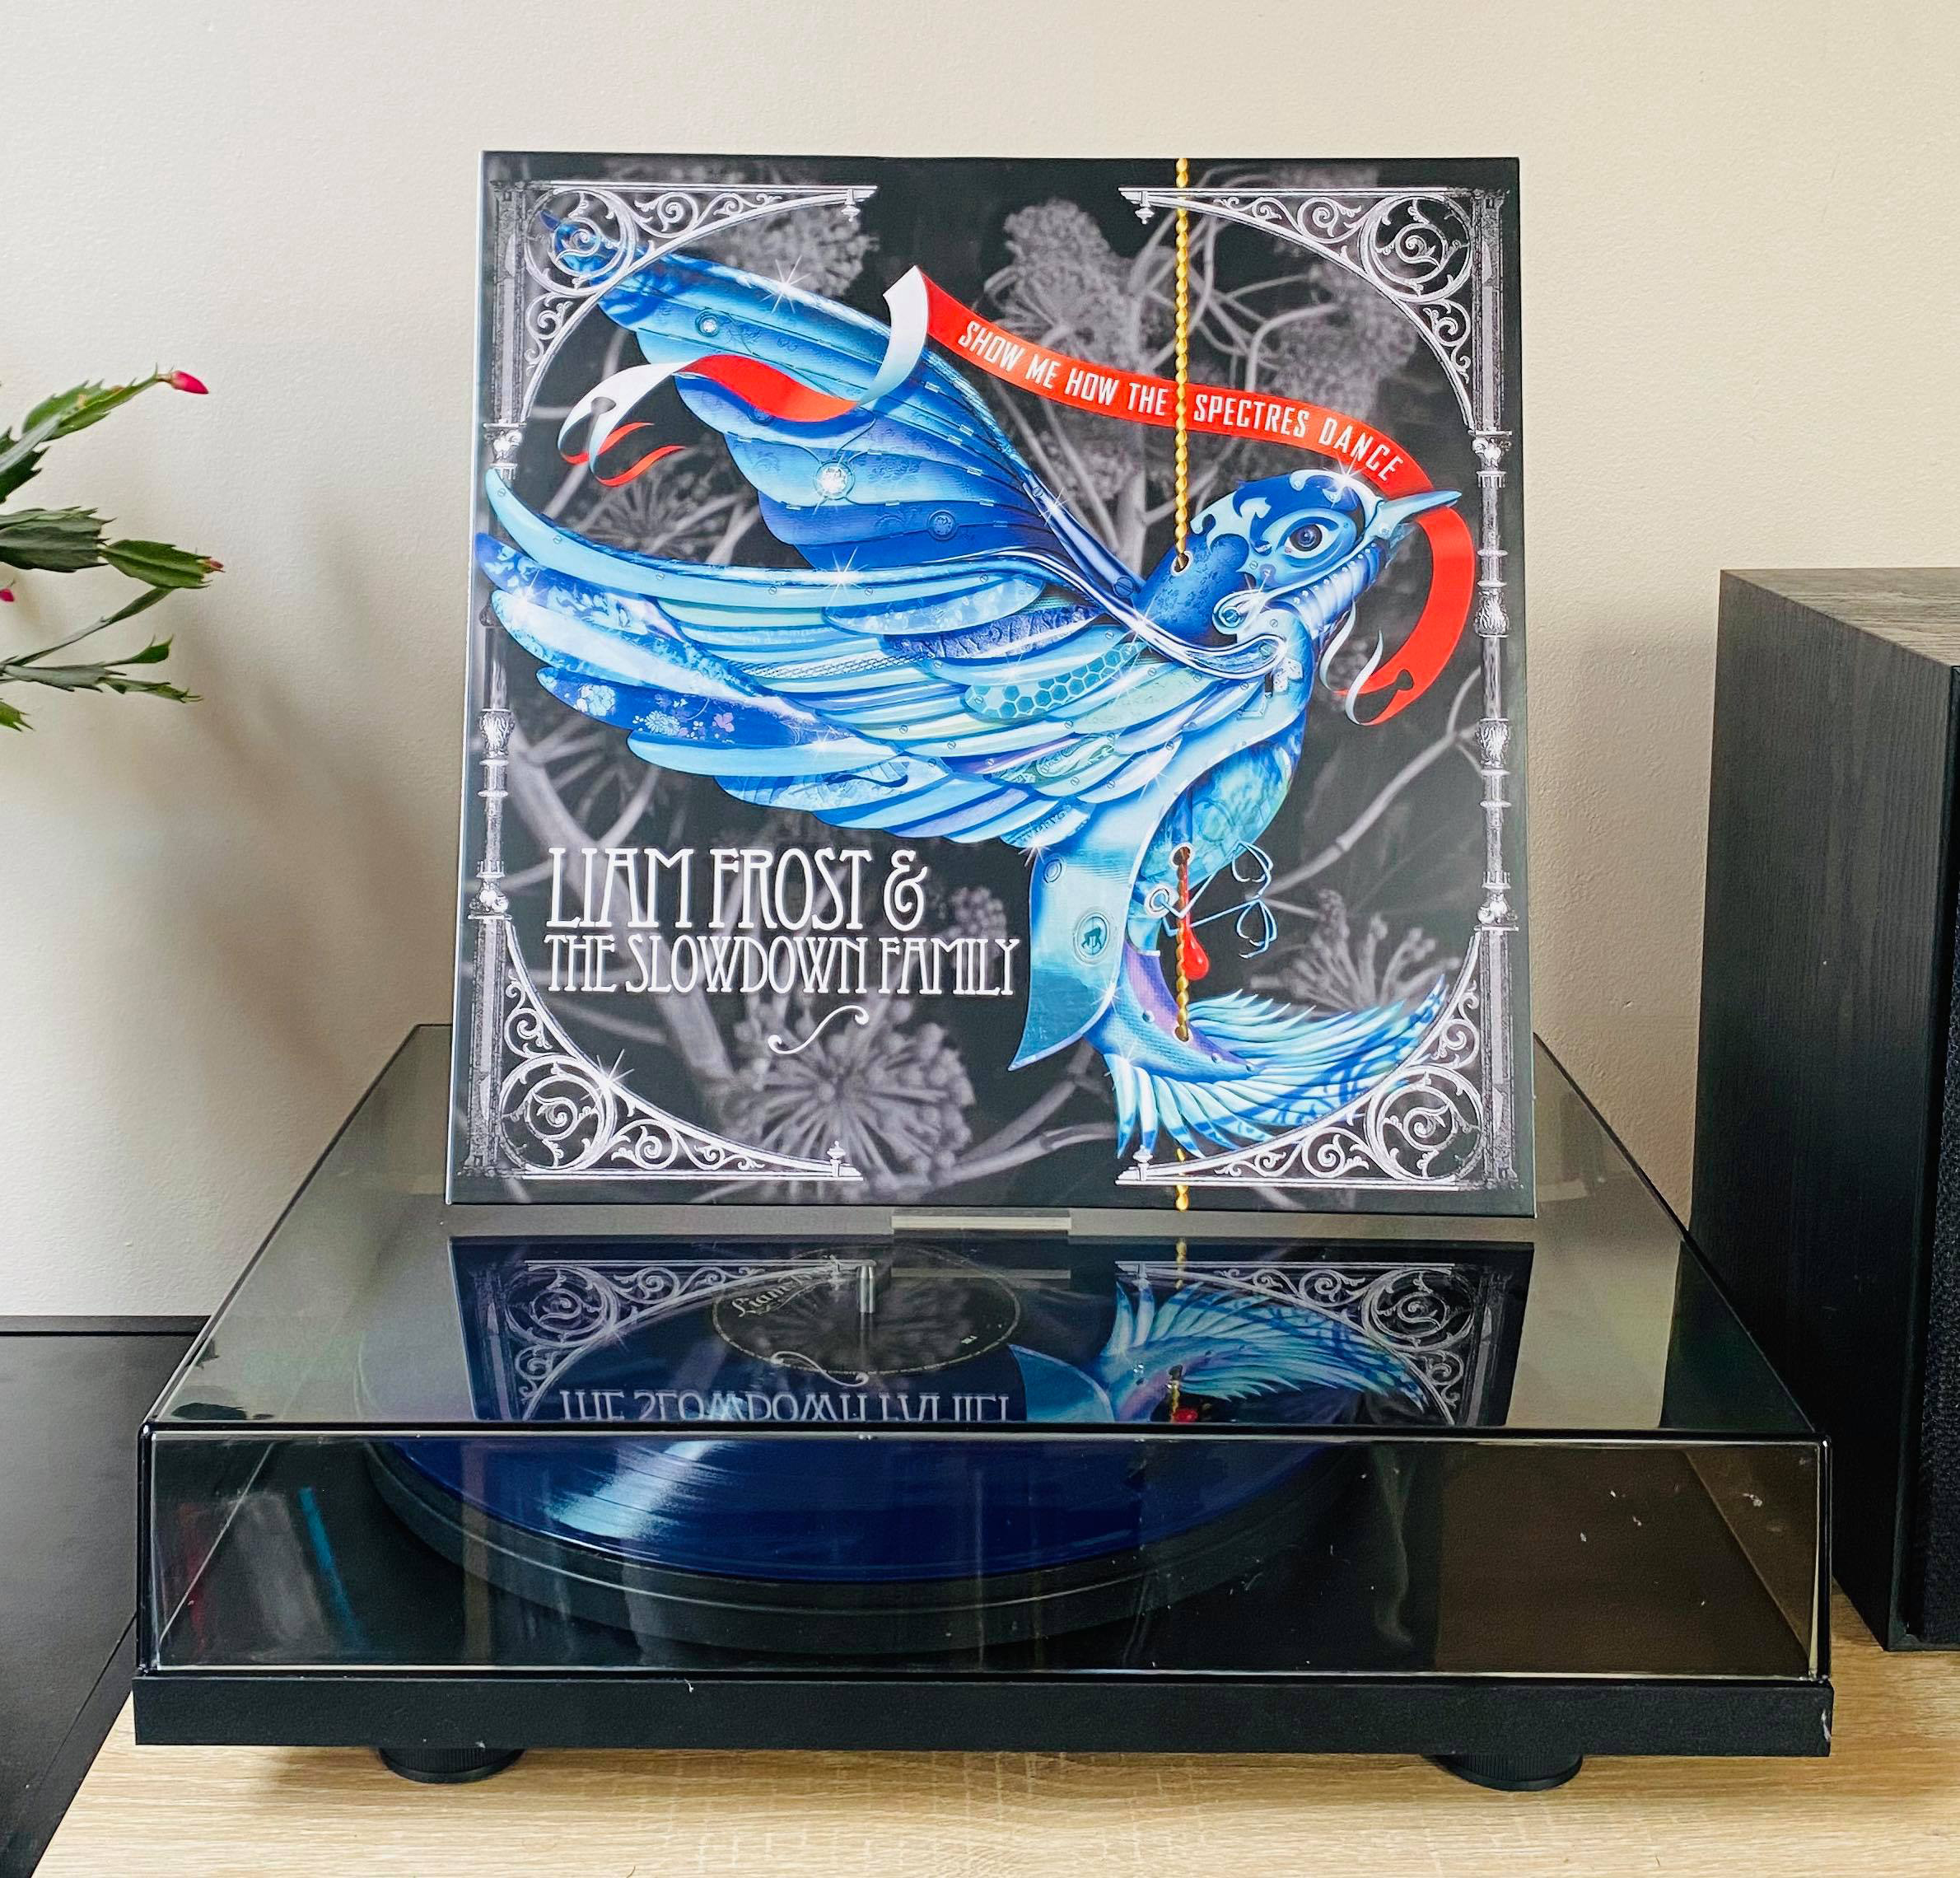 ON THE TURNTABLE: Liam Frost & The Slowdown Family - Show Me How The Spectres Dance